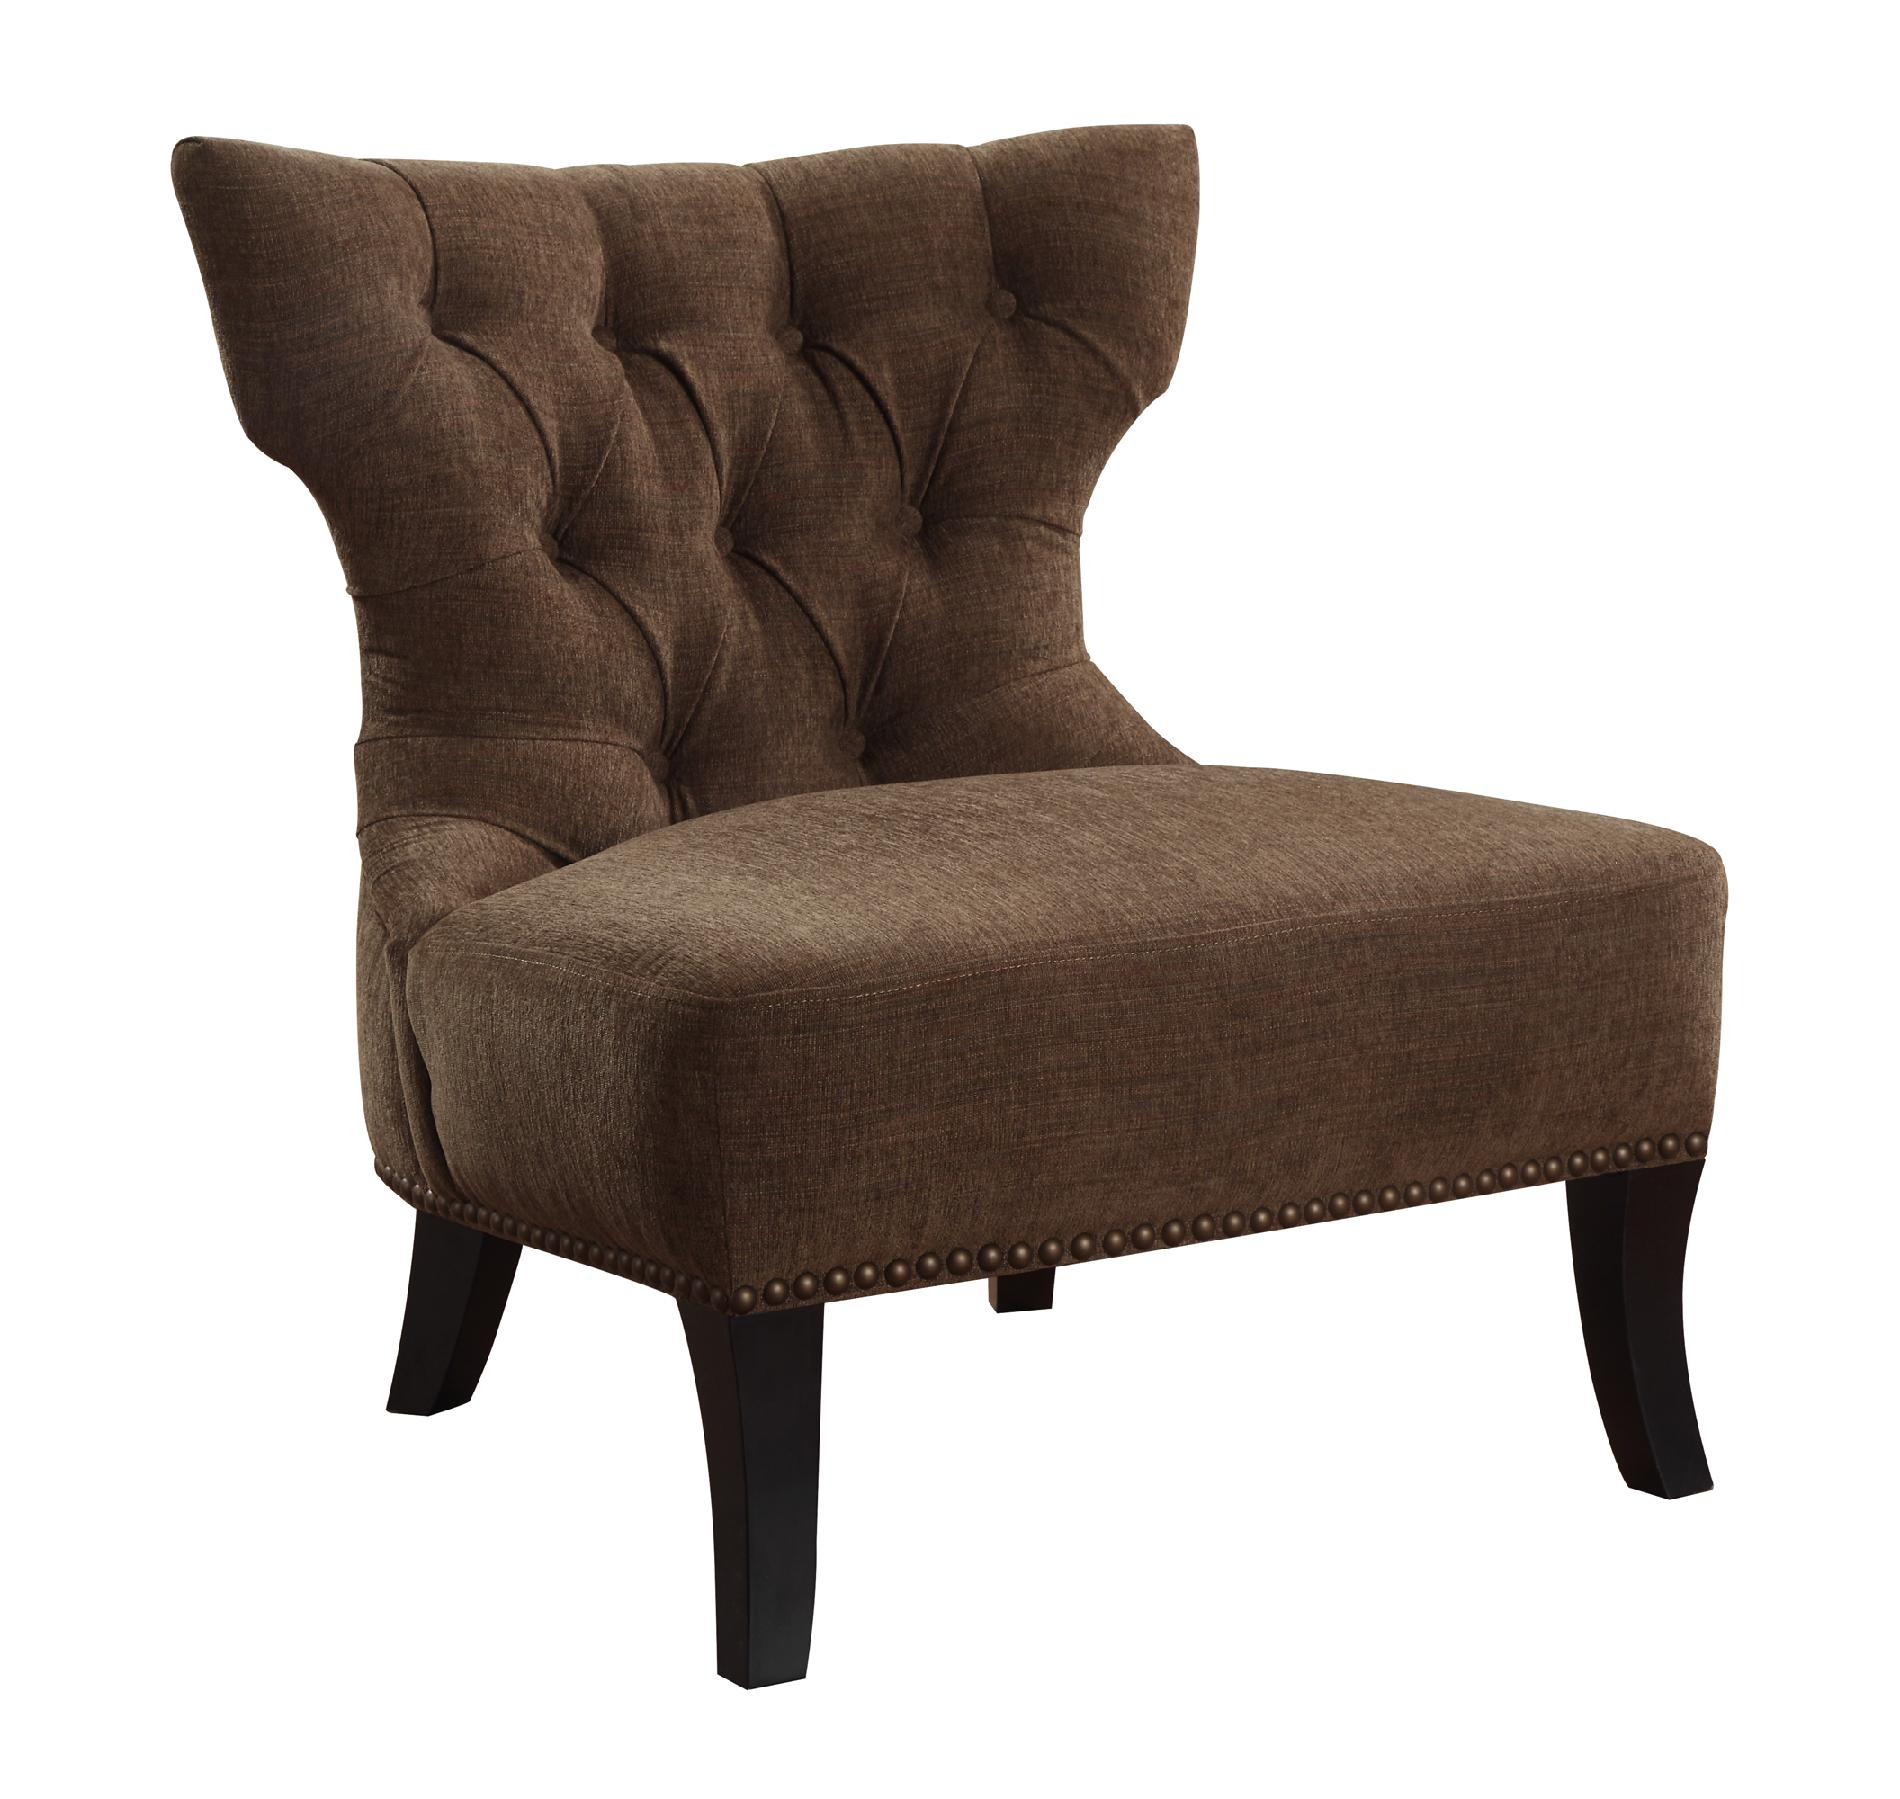 Brown Accent Chairs Monarch Specialties Accent Chair Brown Swirl Fabric